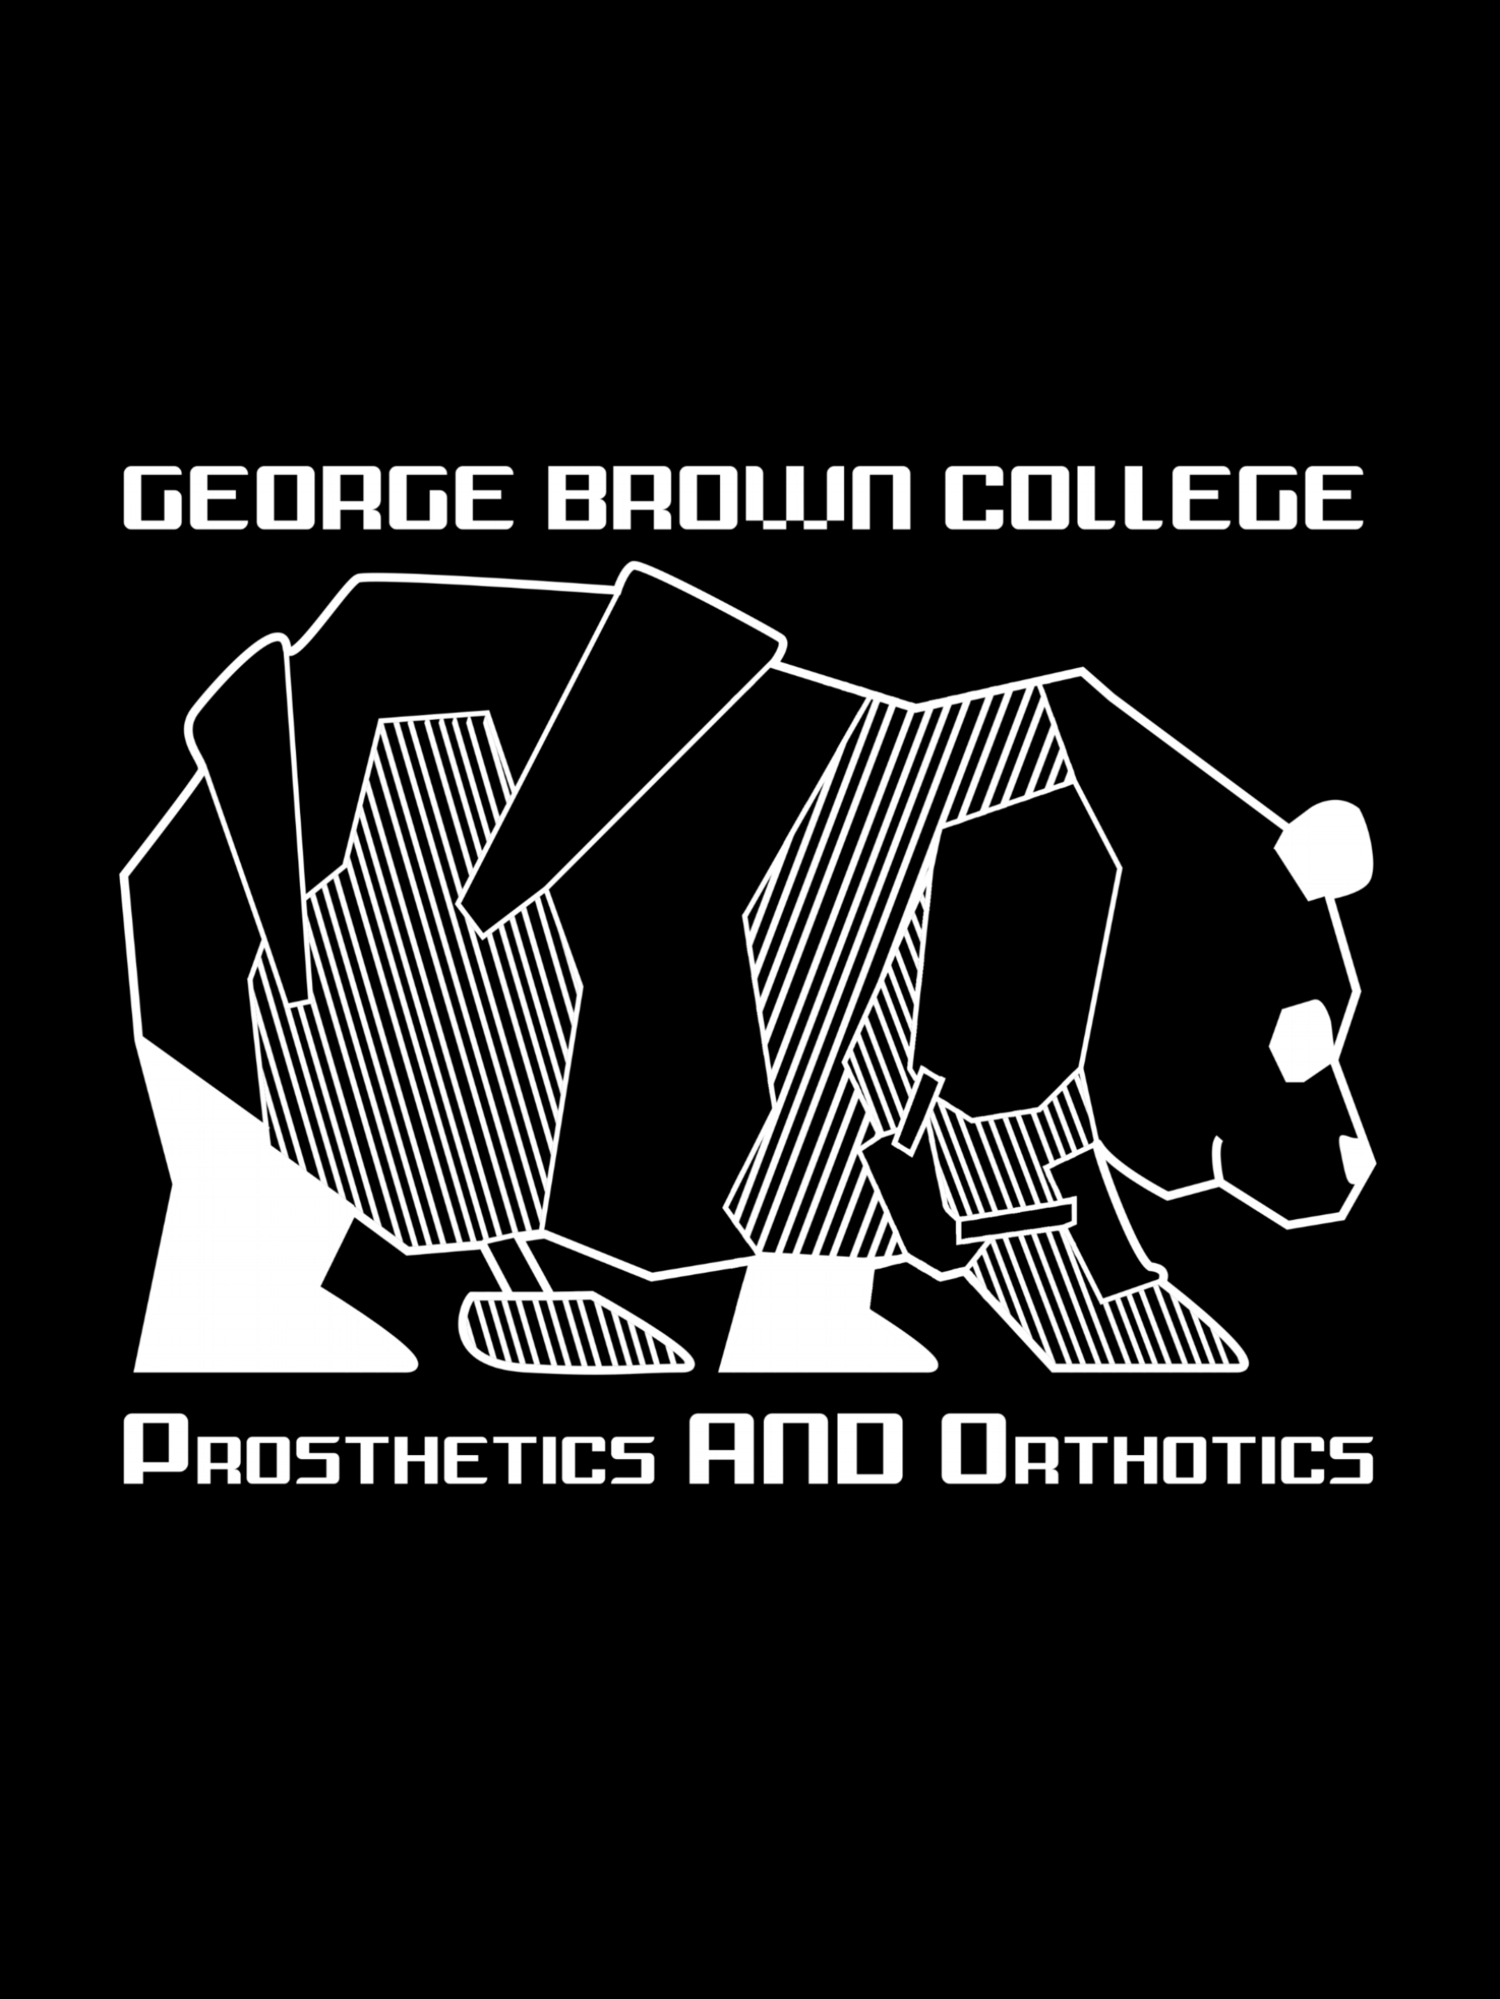 GBC Prosthetic & Orthotic Educational Programs